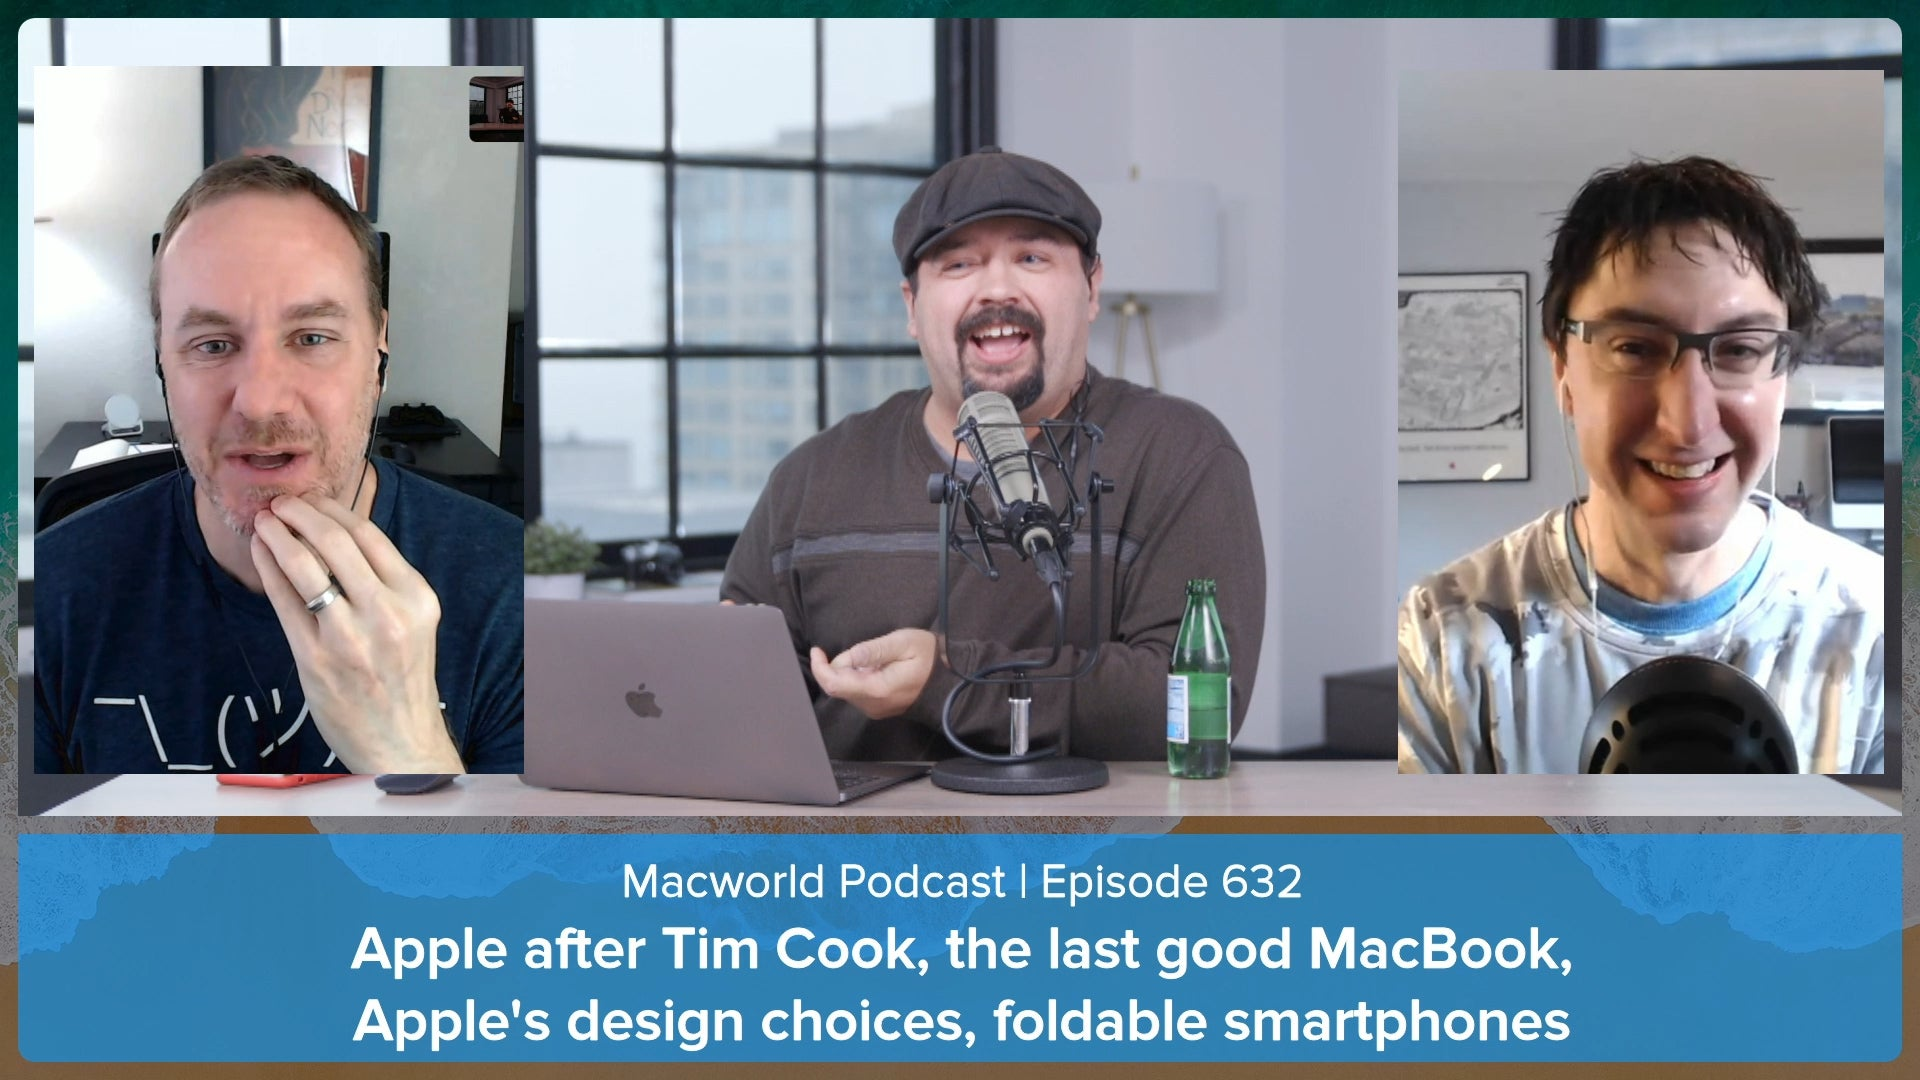 Macworld Podcast